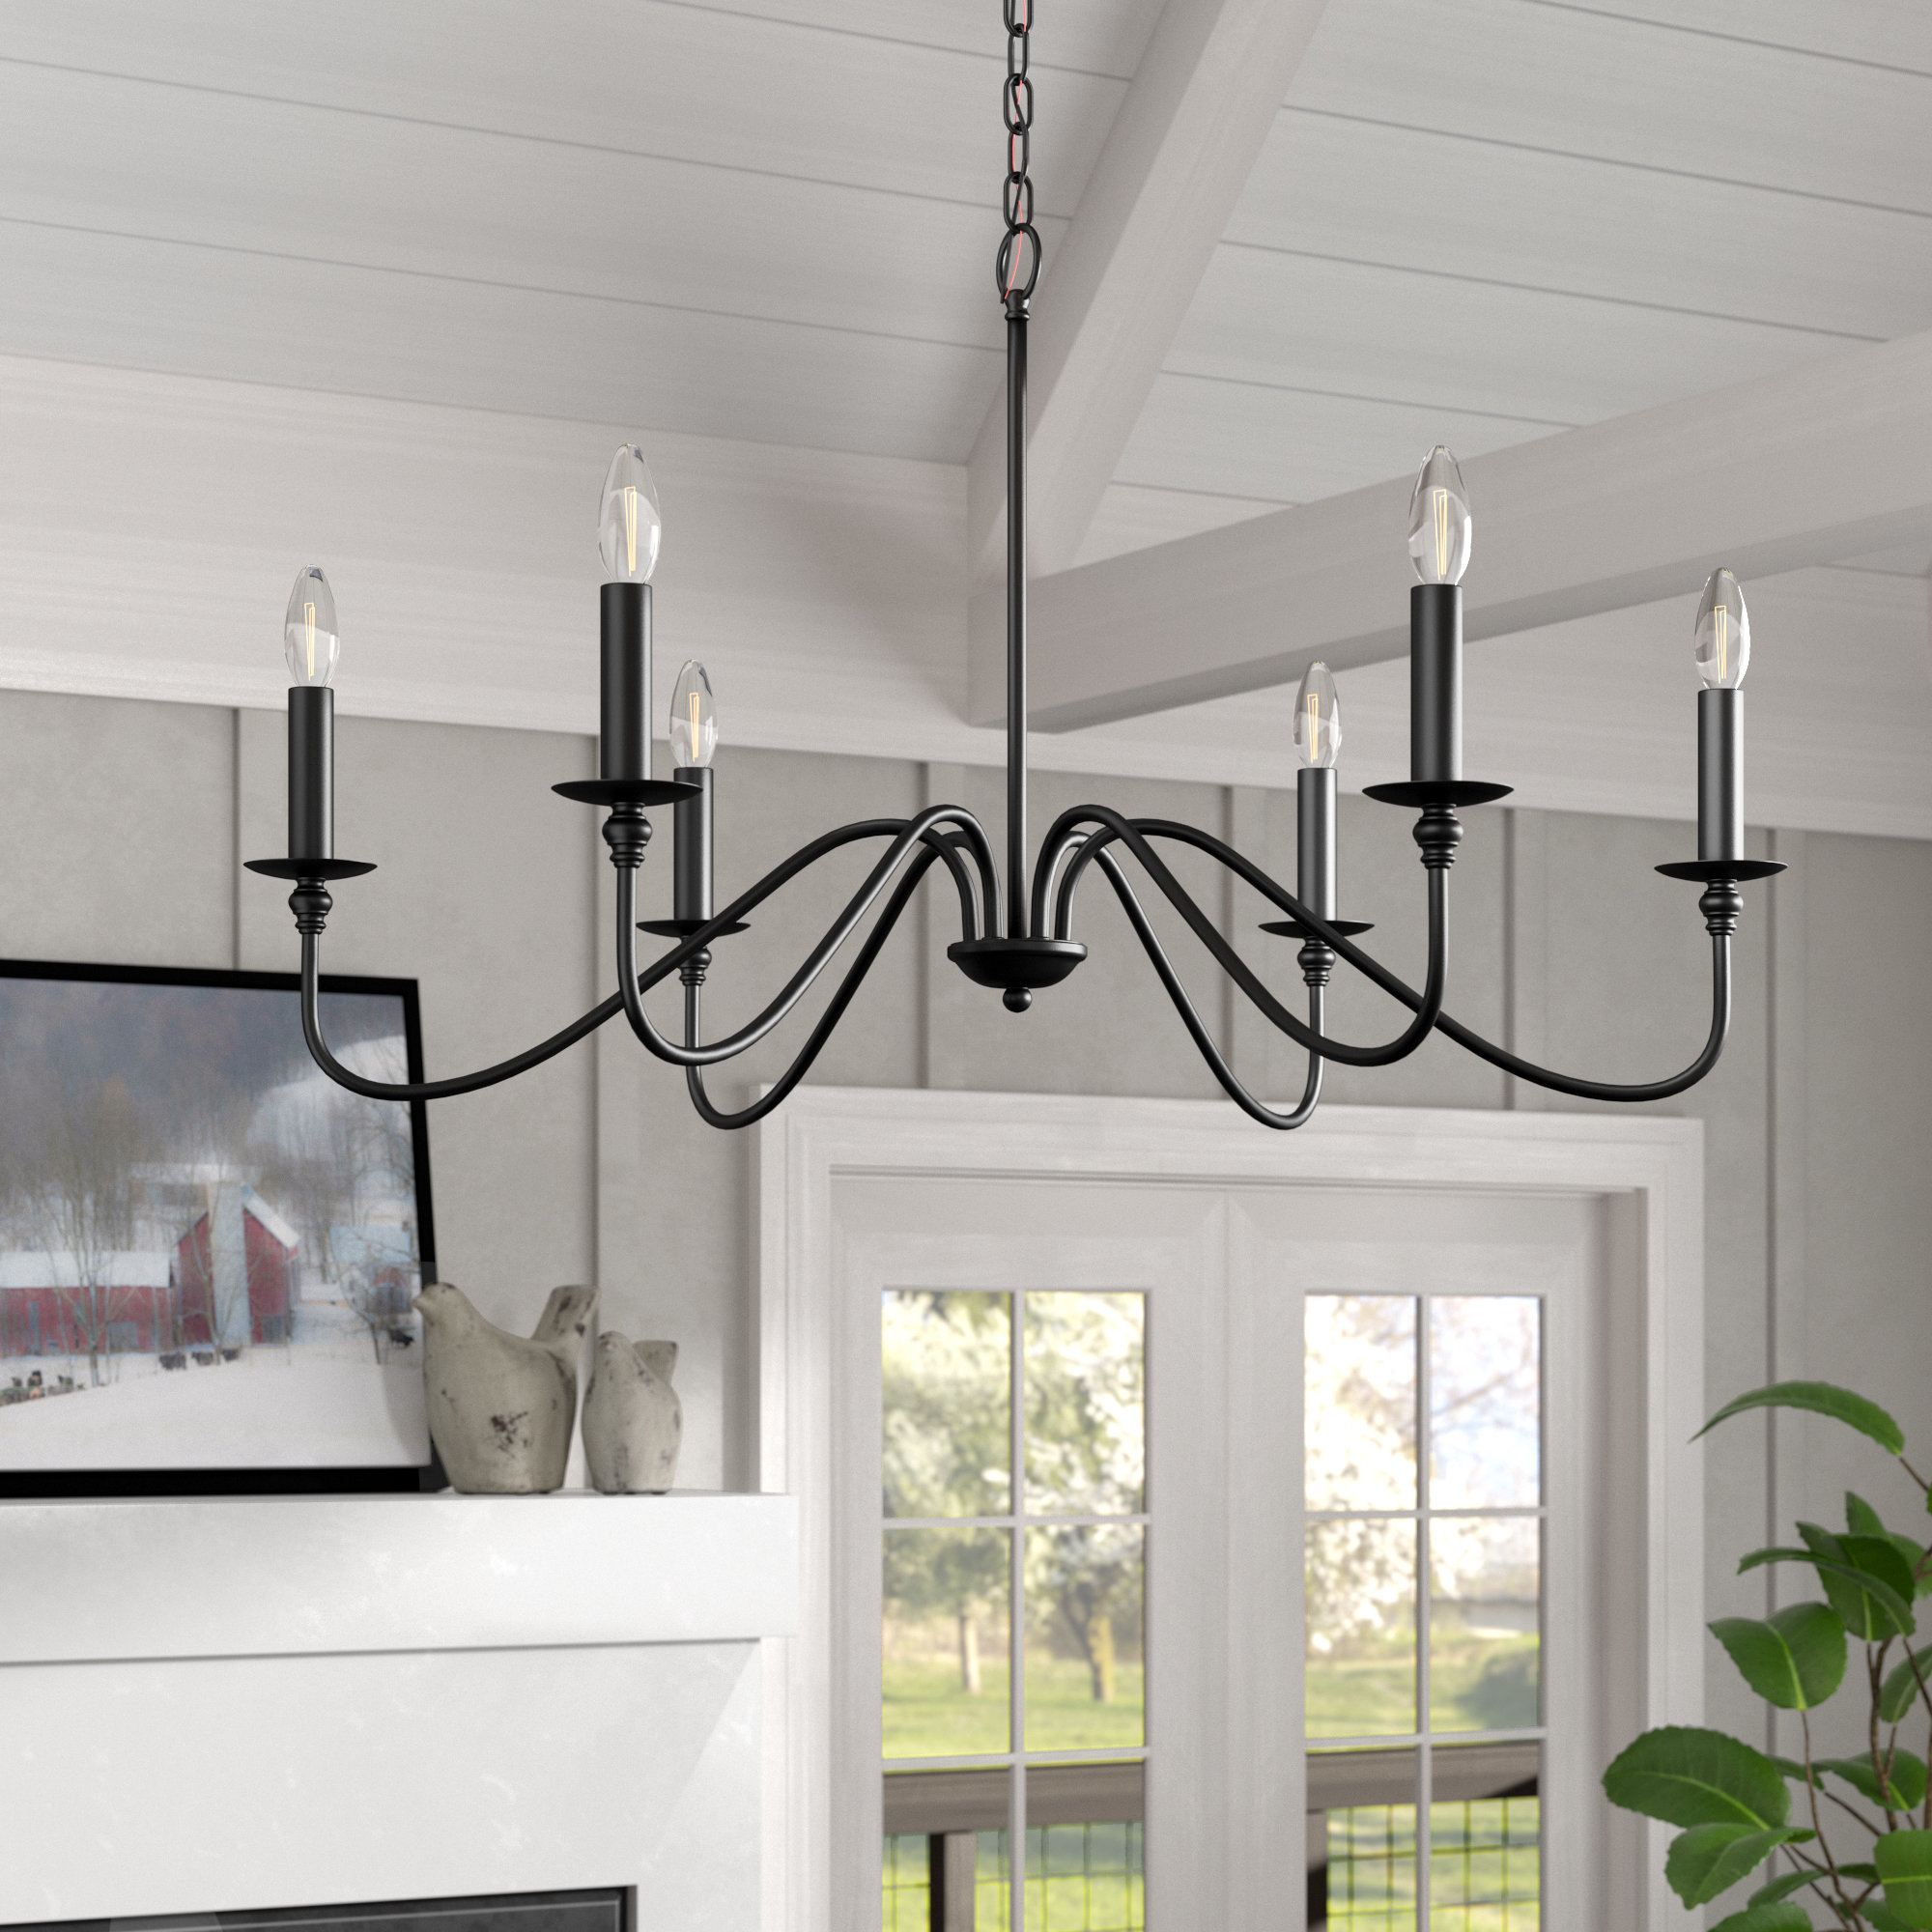 Most Recent Diaz 6 Light Candle Style Chandeliers Throughout Hamza 6 Light Candle Style Chandelier (View 3 of 25)